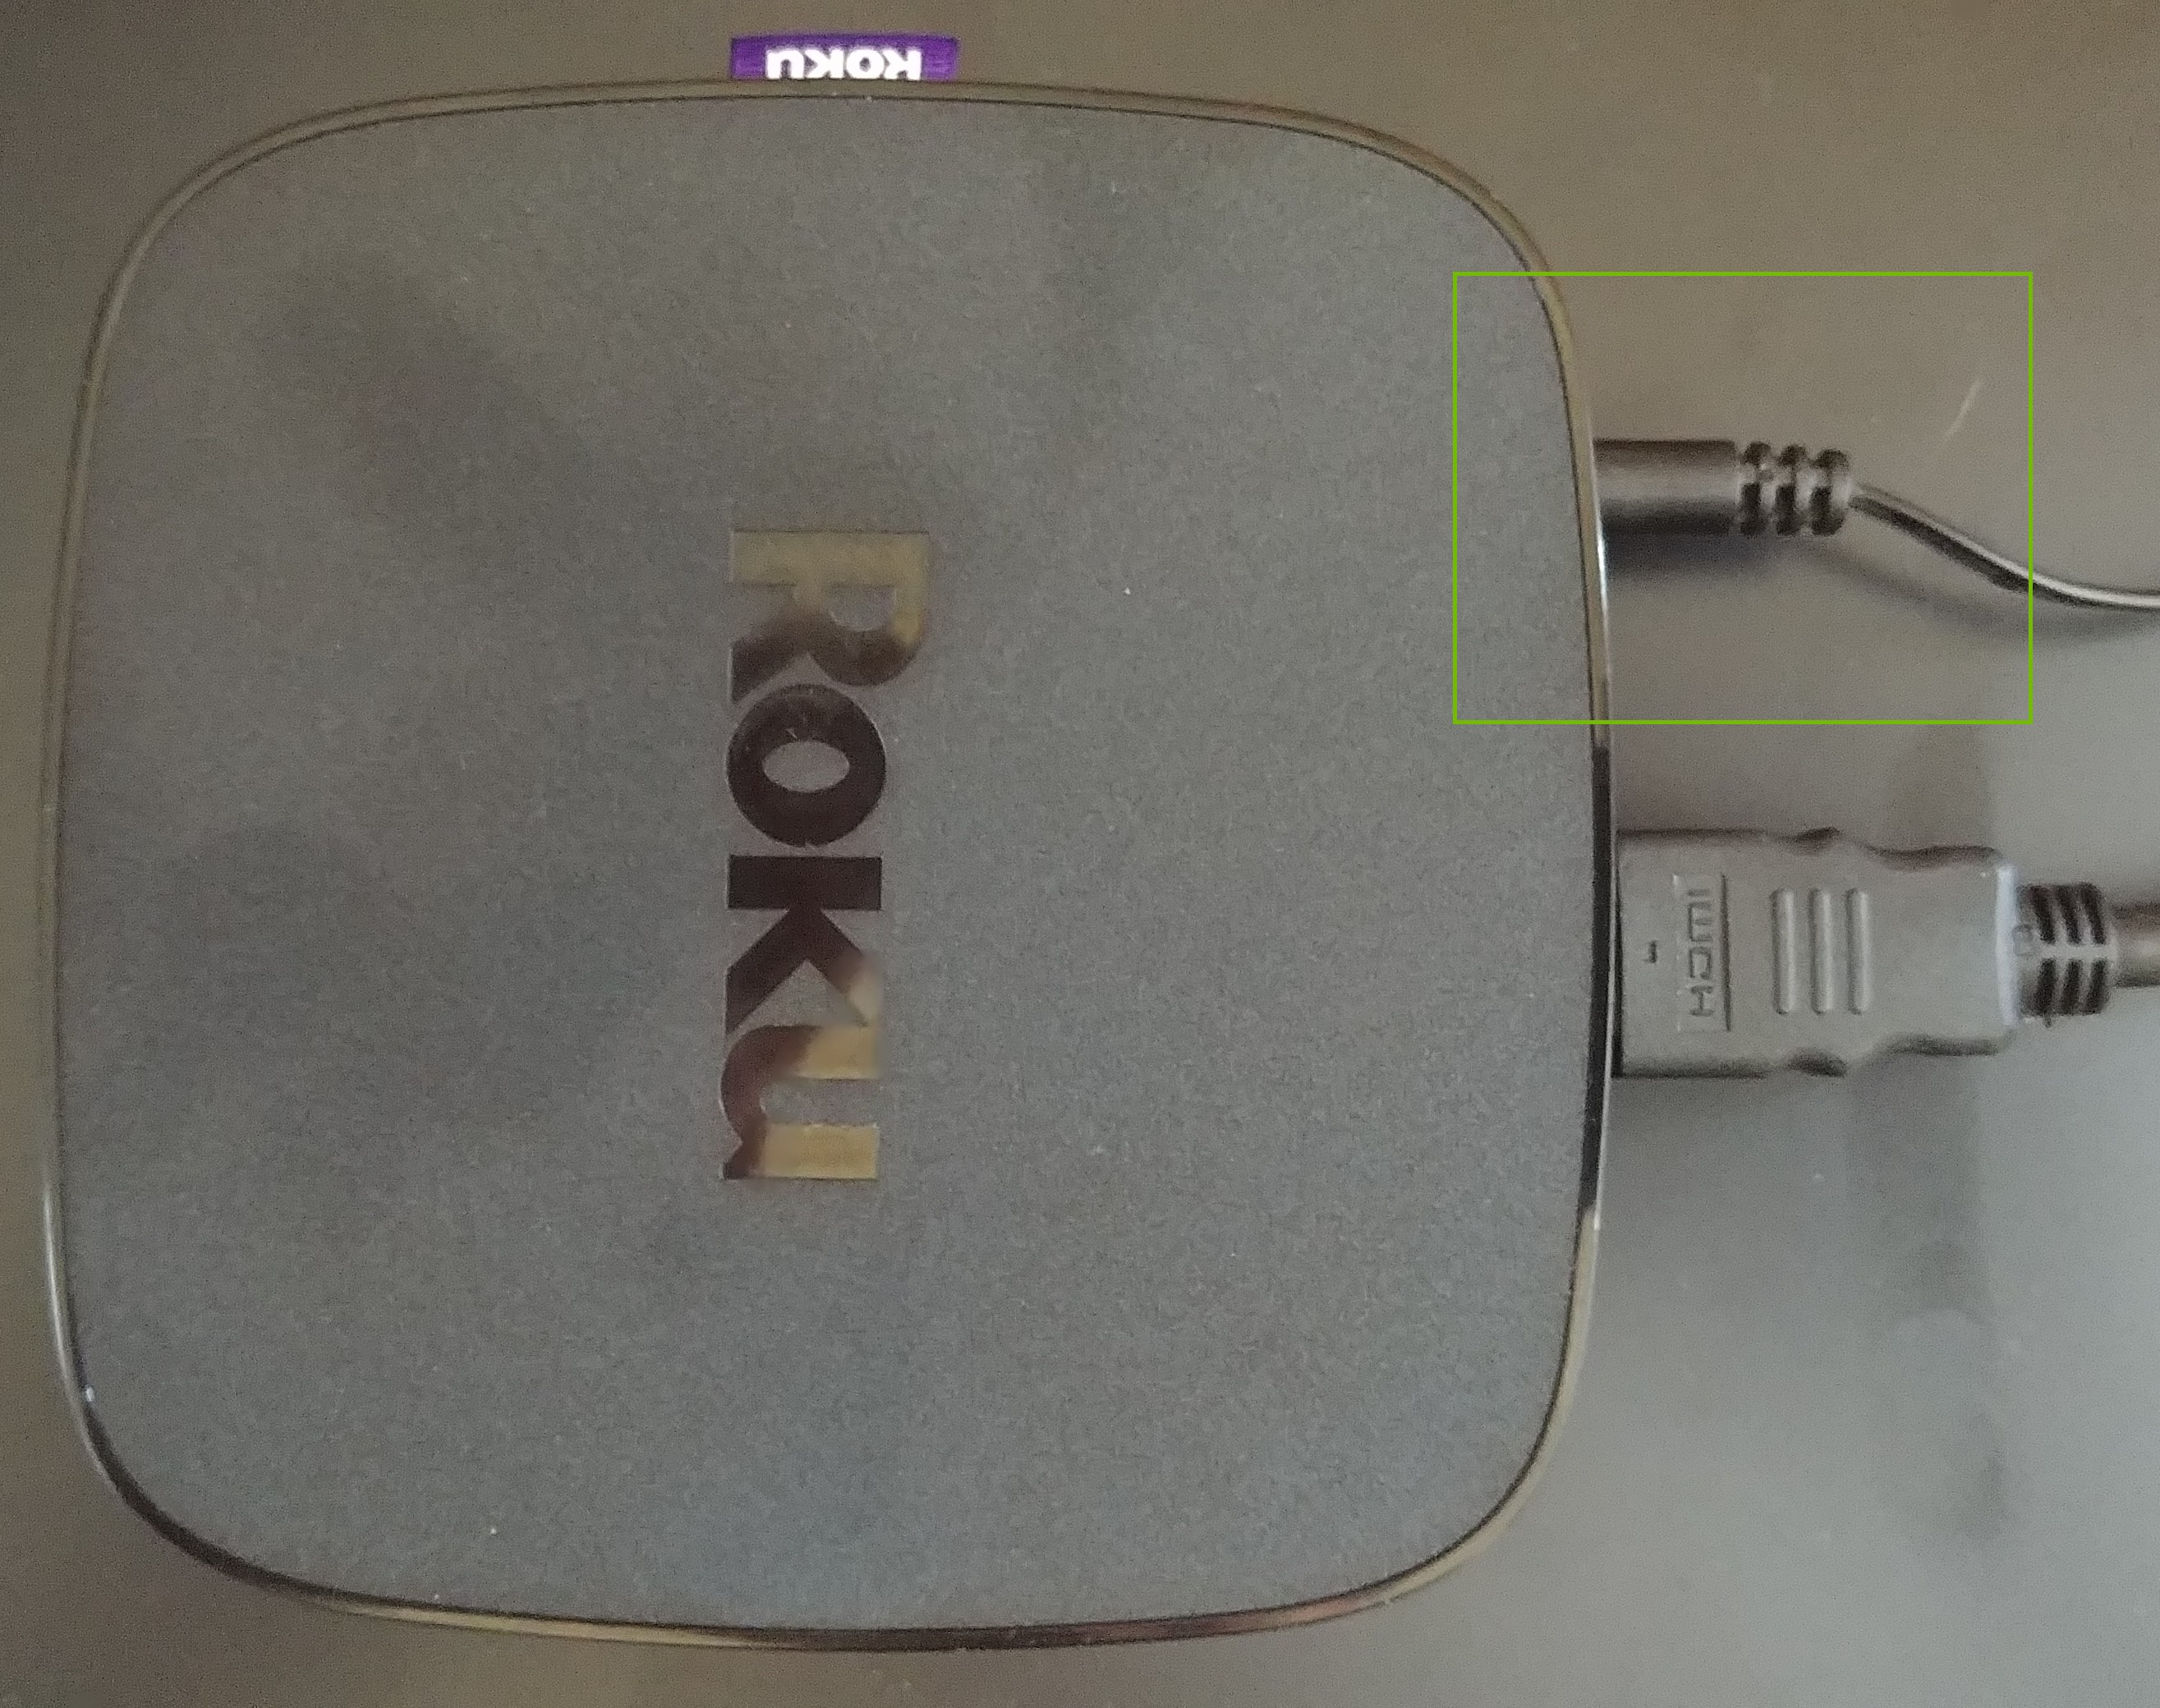 Roku with power cable plugged in.